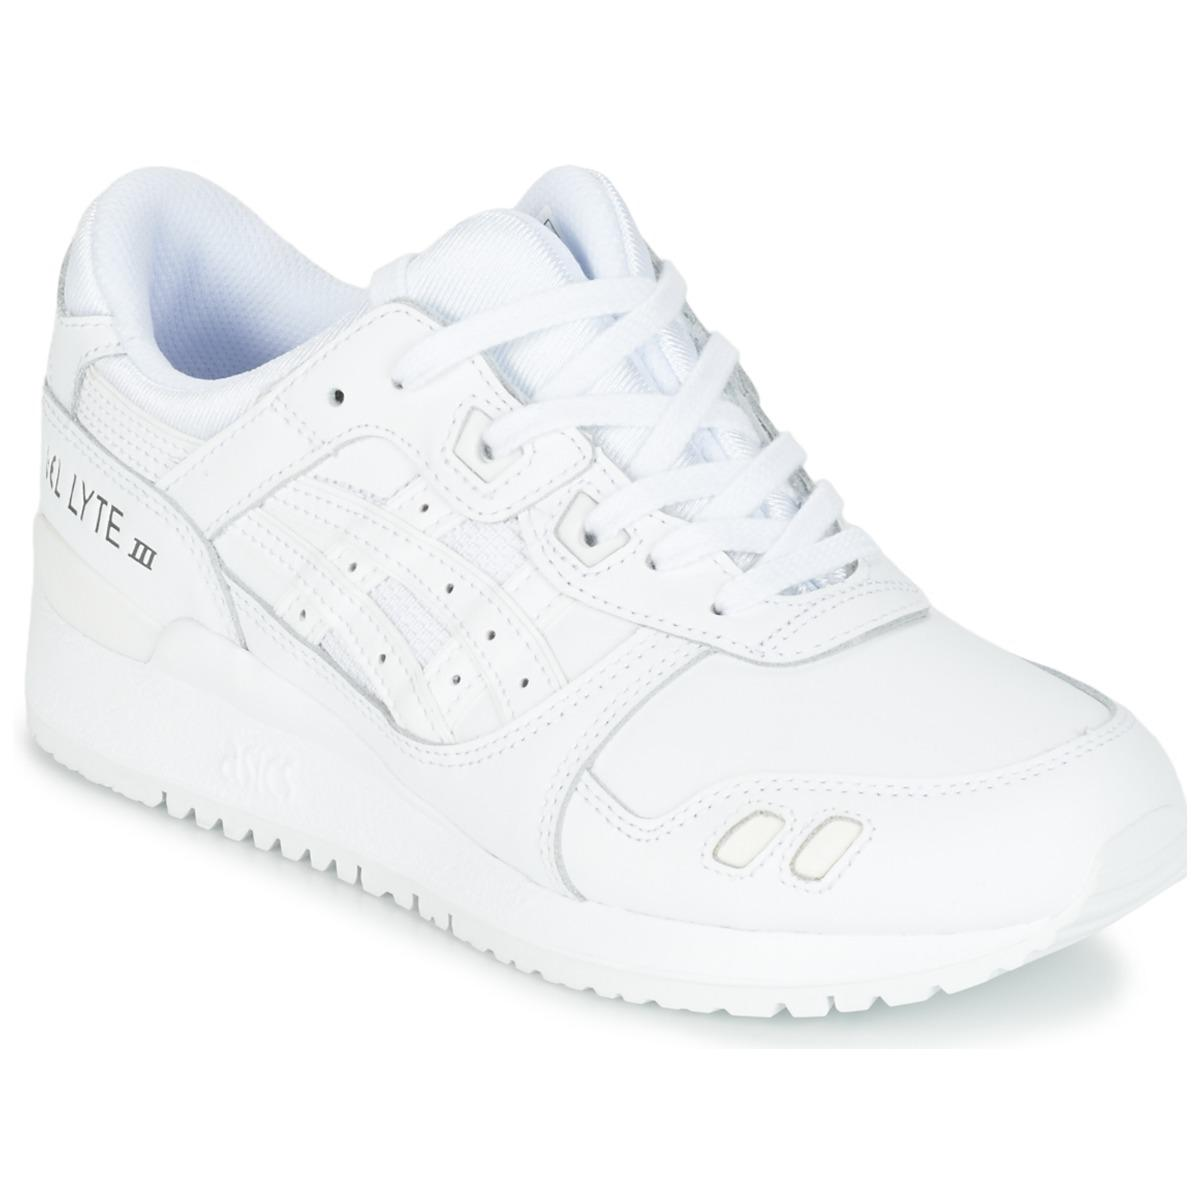 timeless design 92f55 7d414 Asics Gel-lyte Iii Shoes (trainers) in White - Lyst